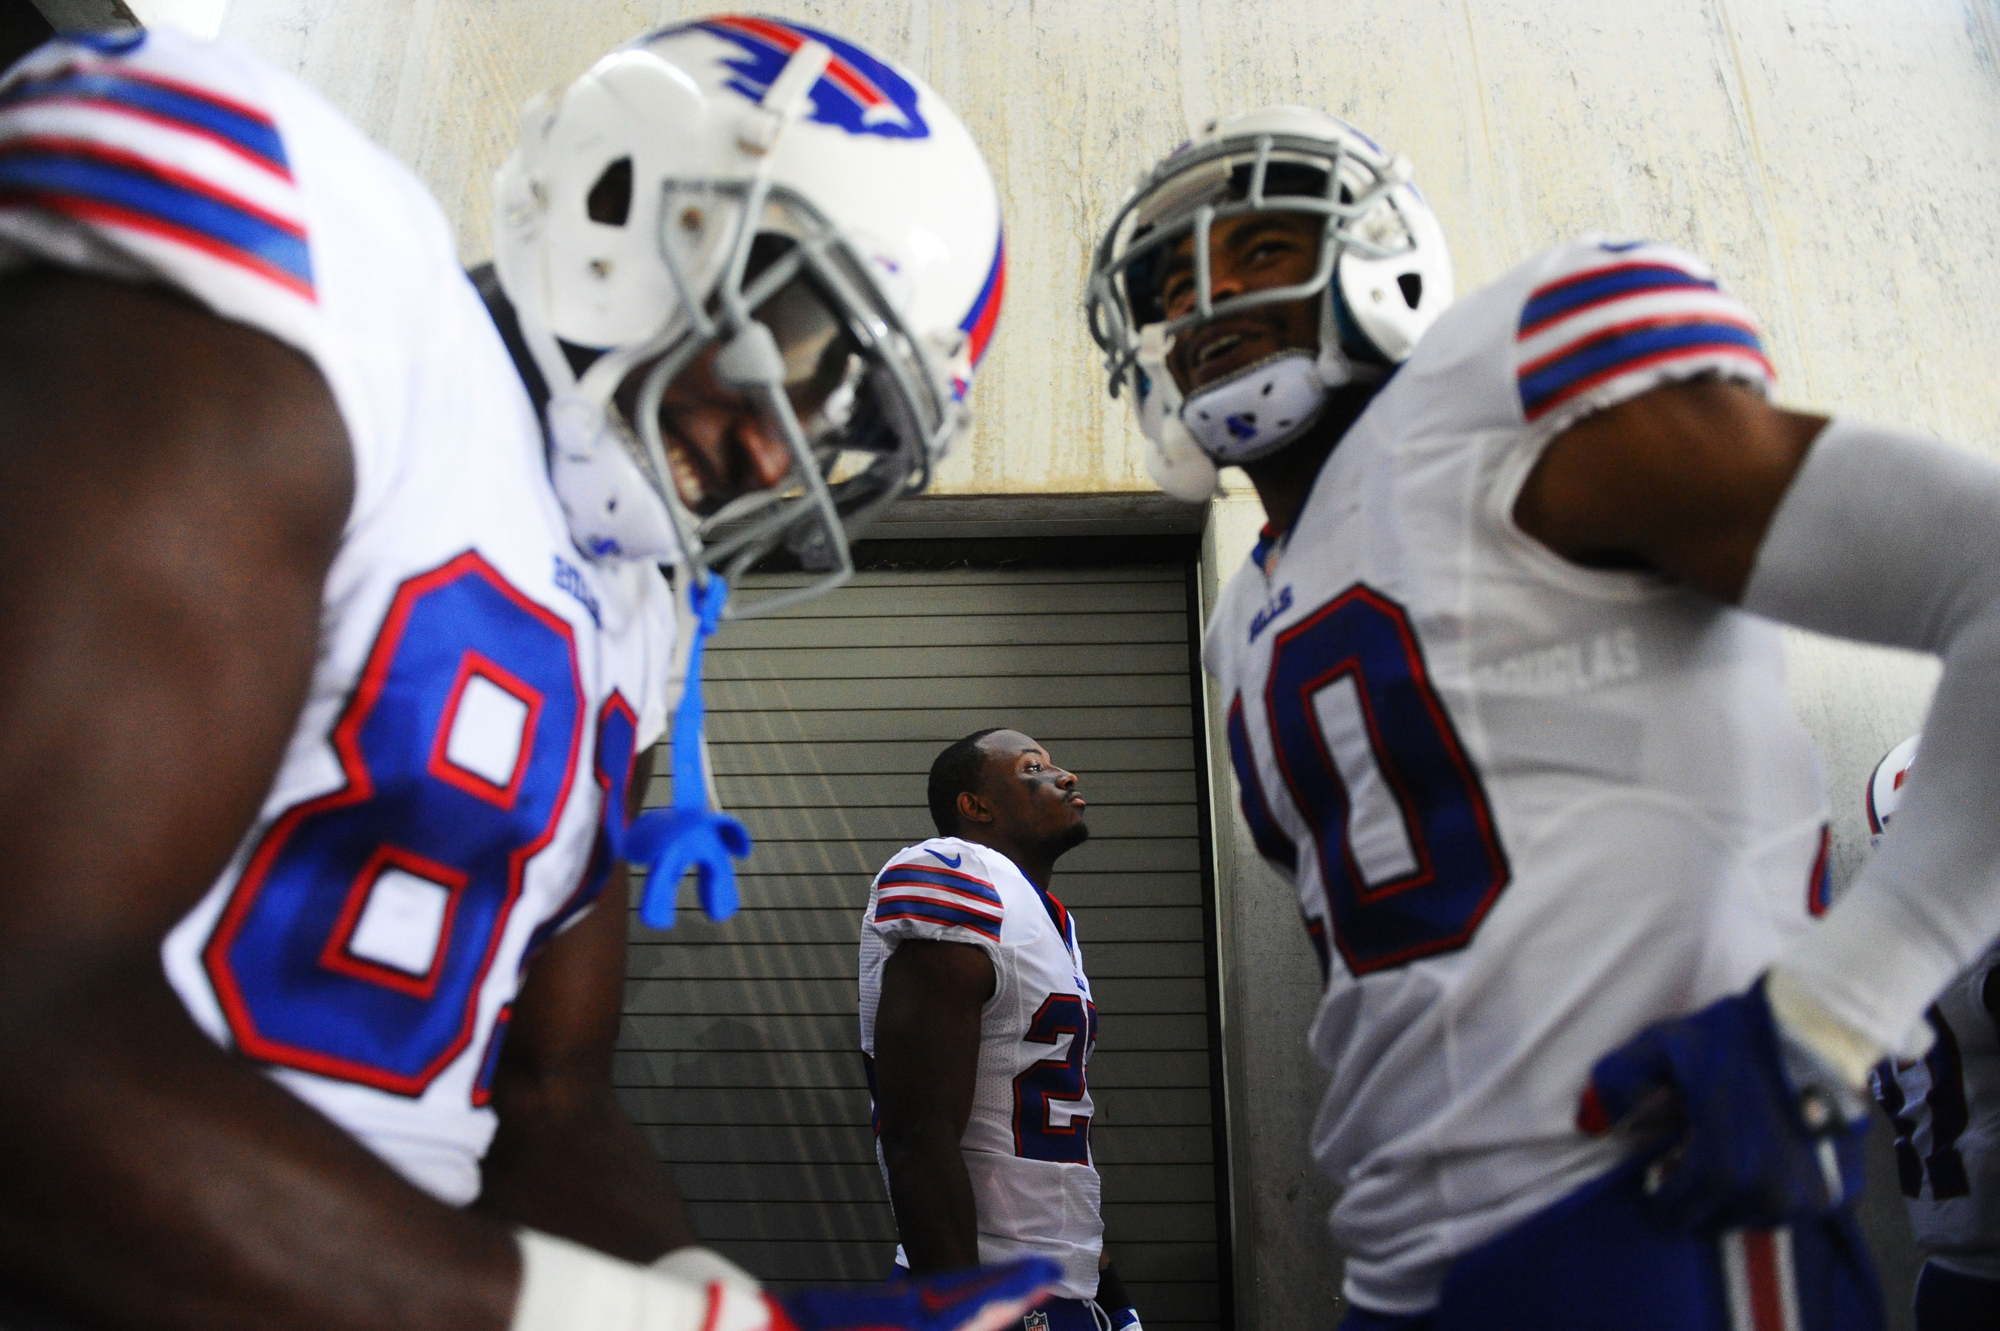 Buffalo Bills running back LeSean McCoy (center) stands in the visitors tunnel before the game against the Philadelphia Eagles at Lincoln Financial Field.